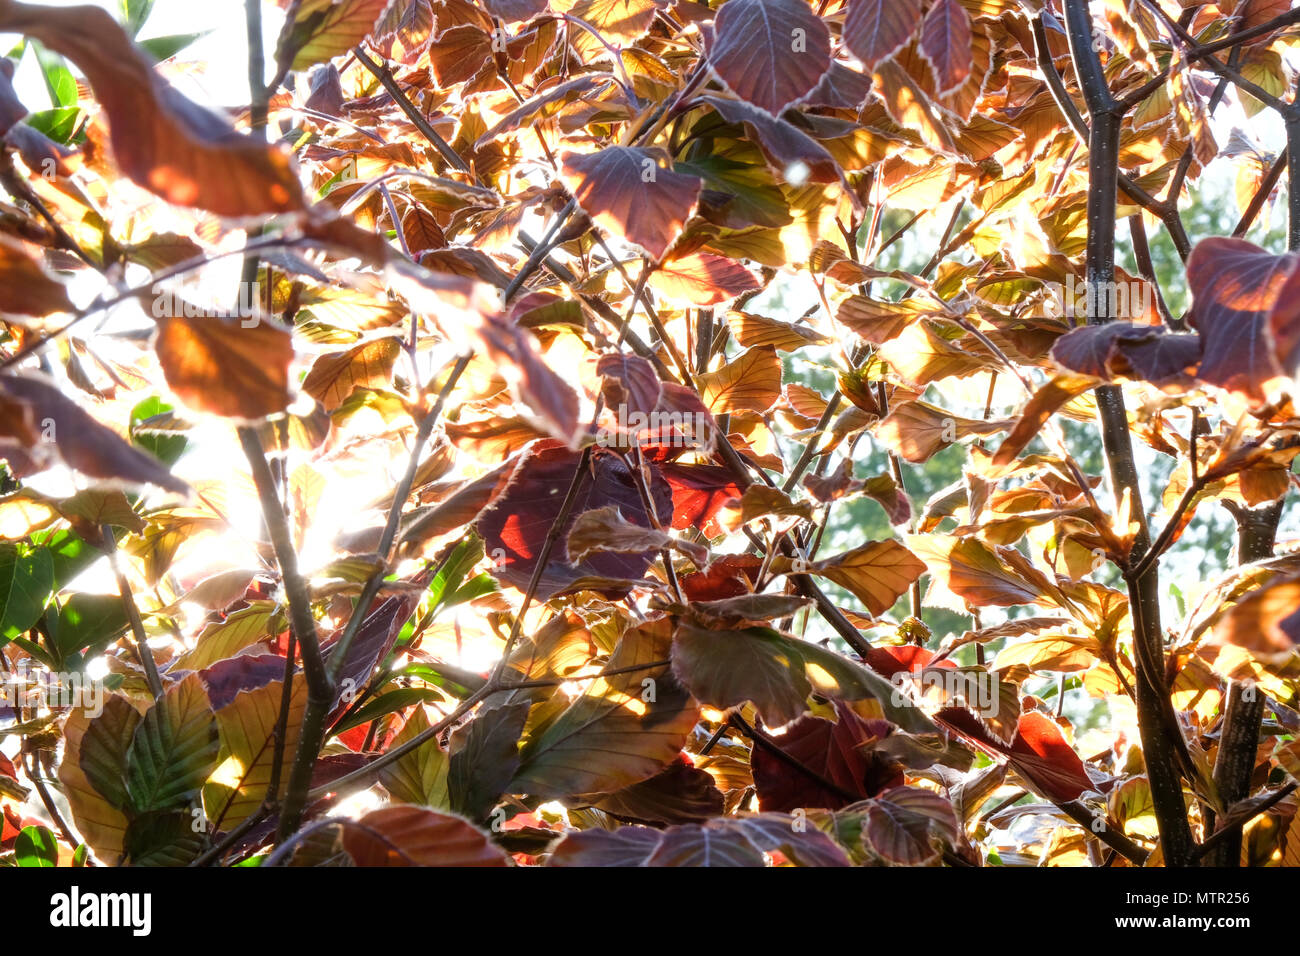 close up of copper coloured leaves and branches of a copper beach hedge, back light from the summer sun forming dapple light on the leaves, the colors - Stock Image